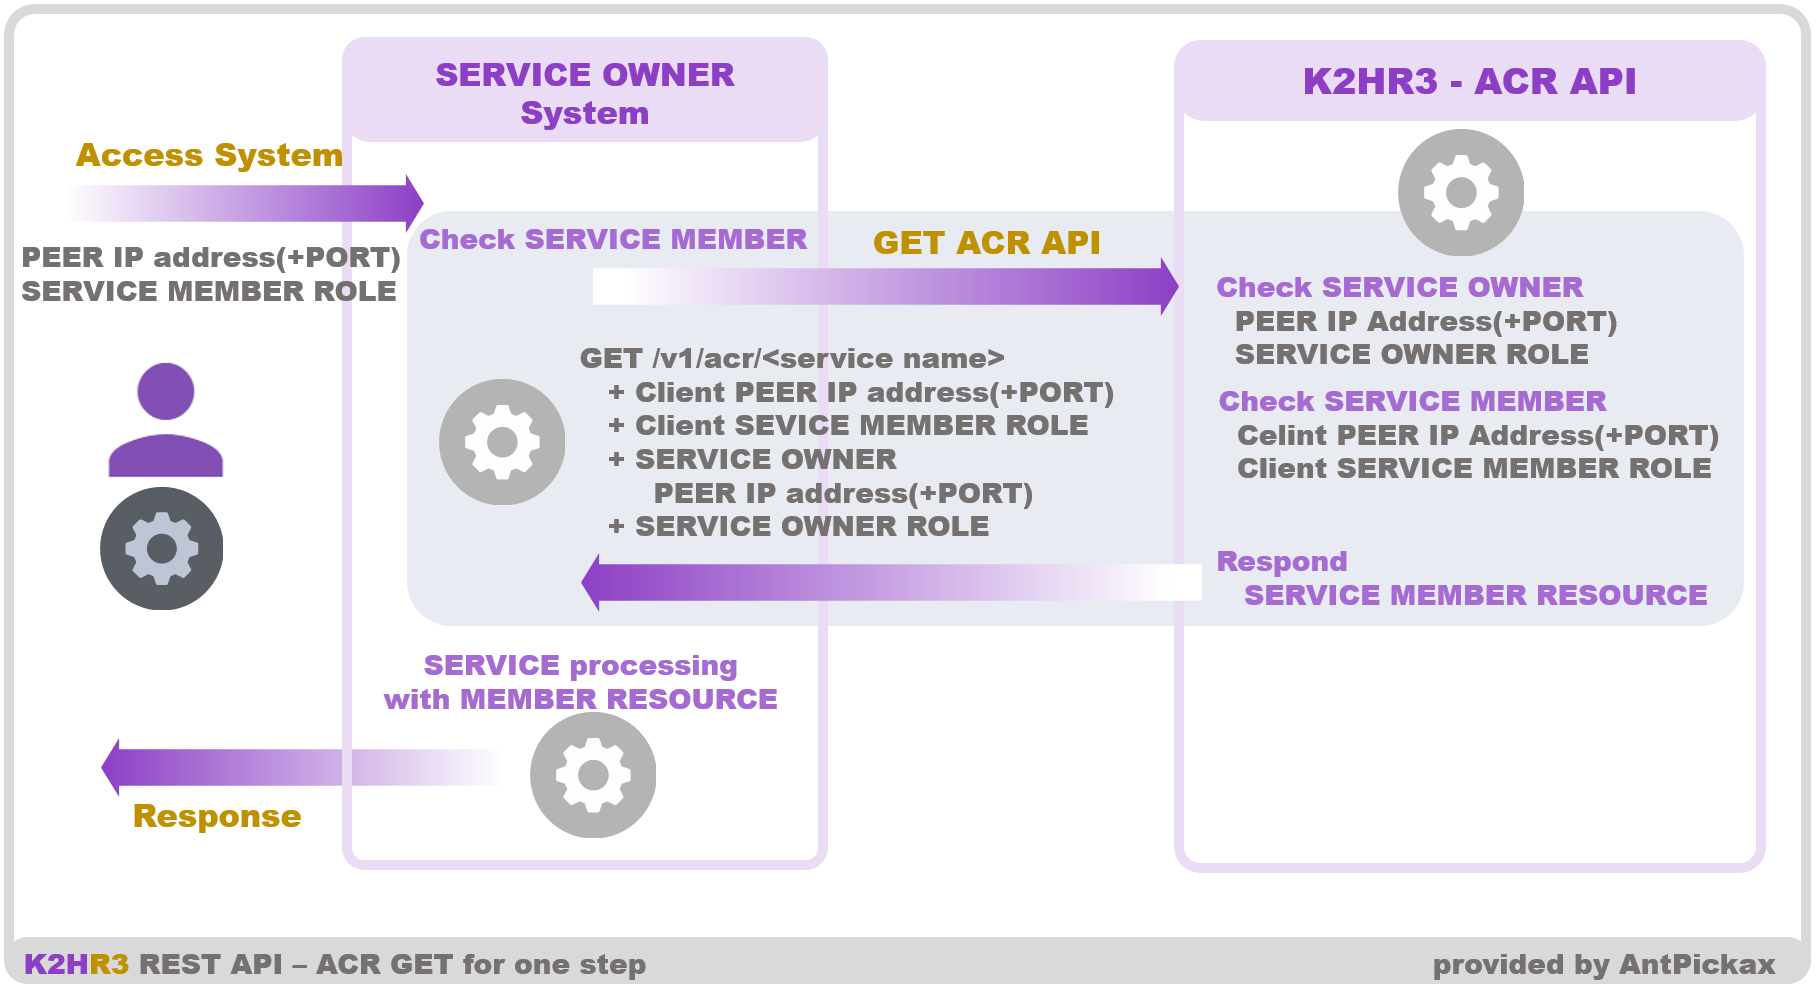 K2HR3 REST API - ACR GET for one step